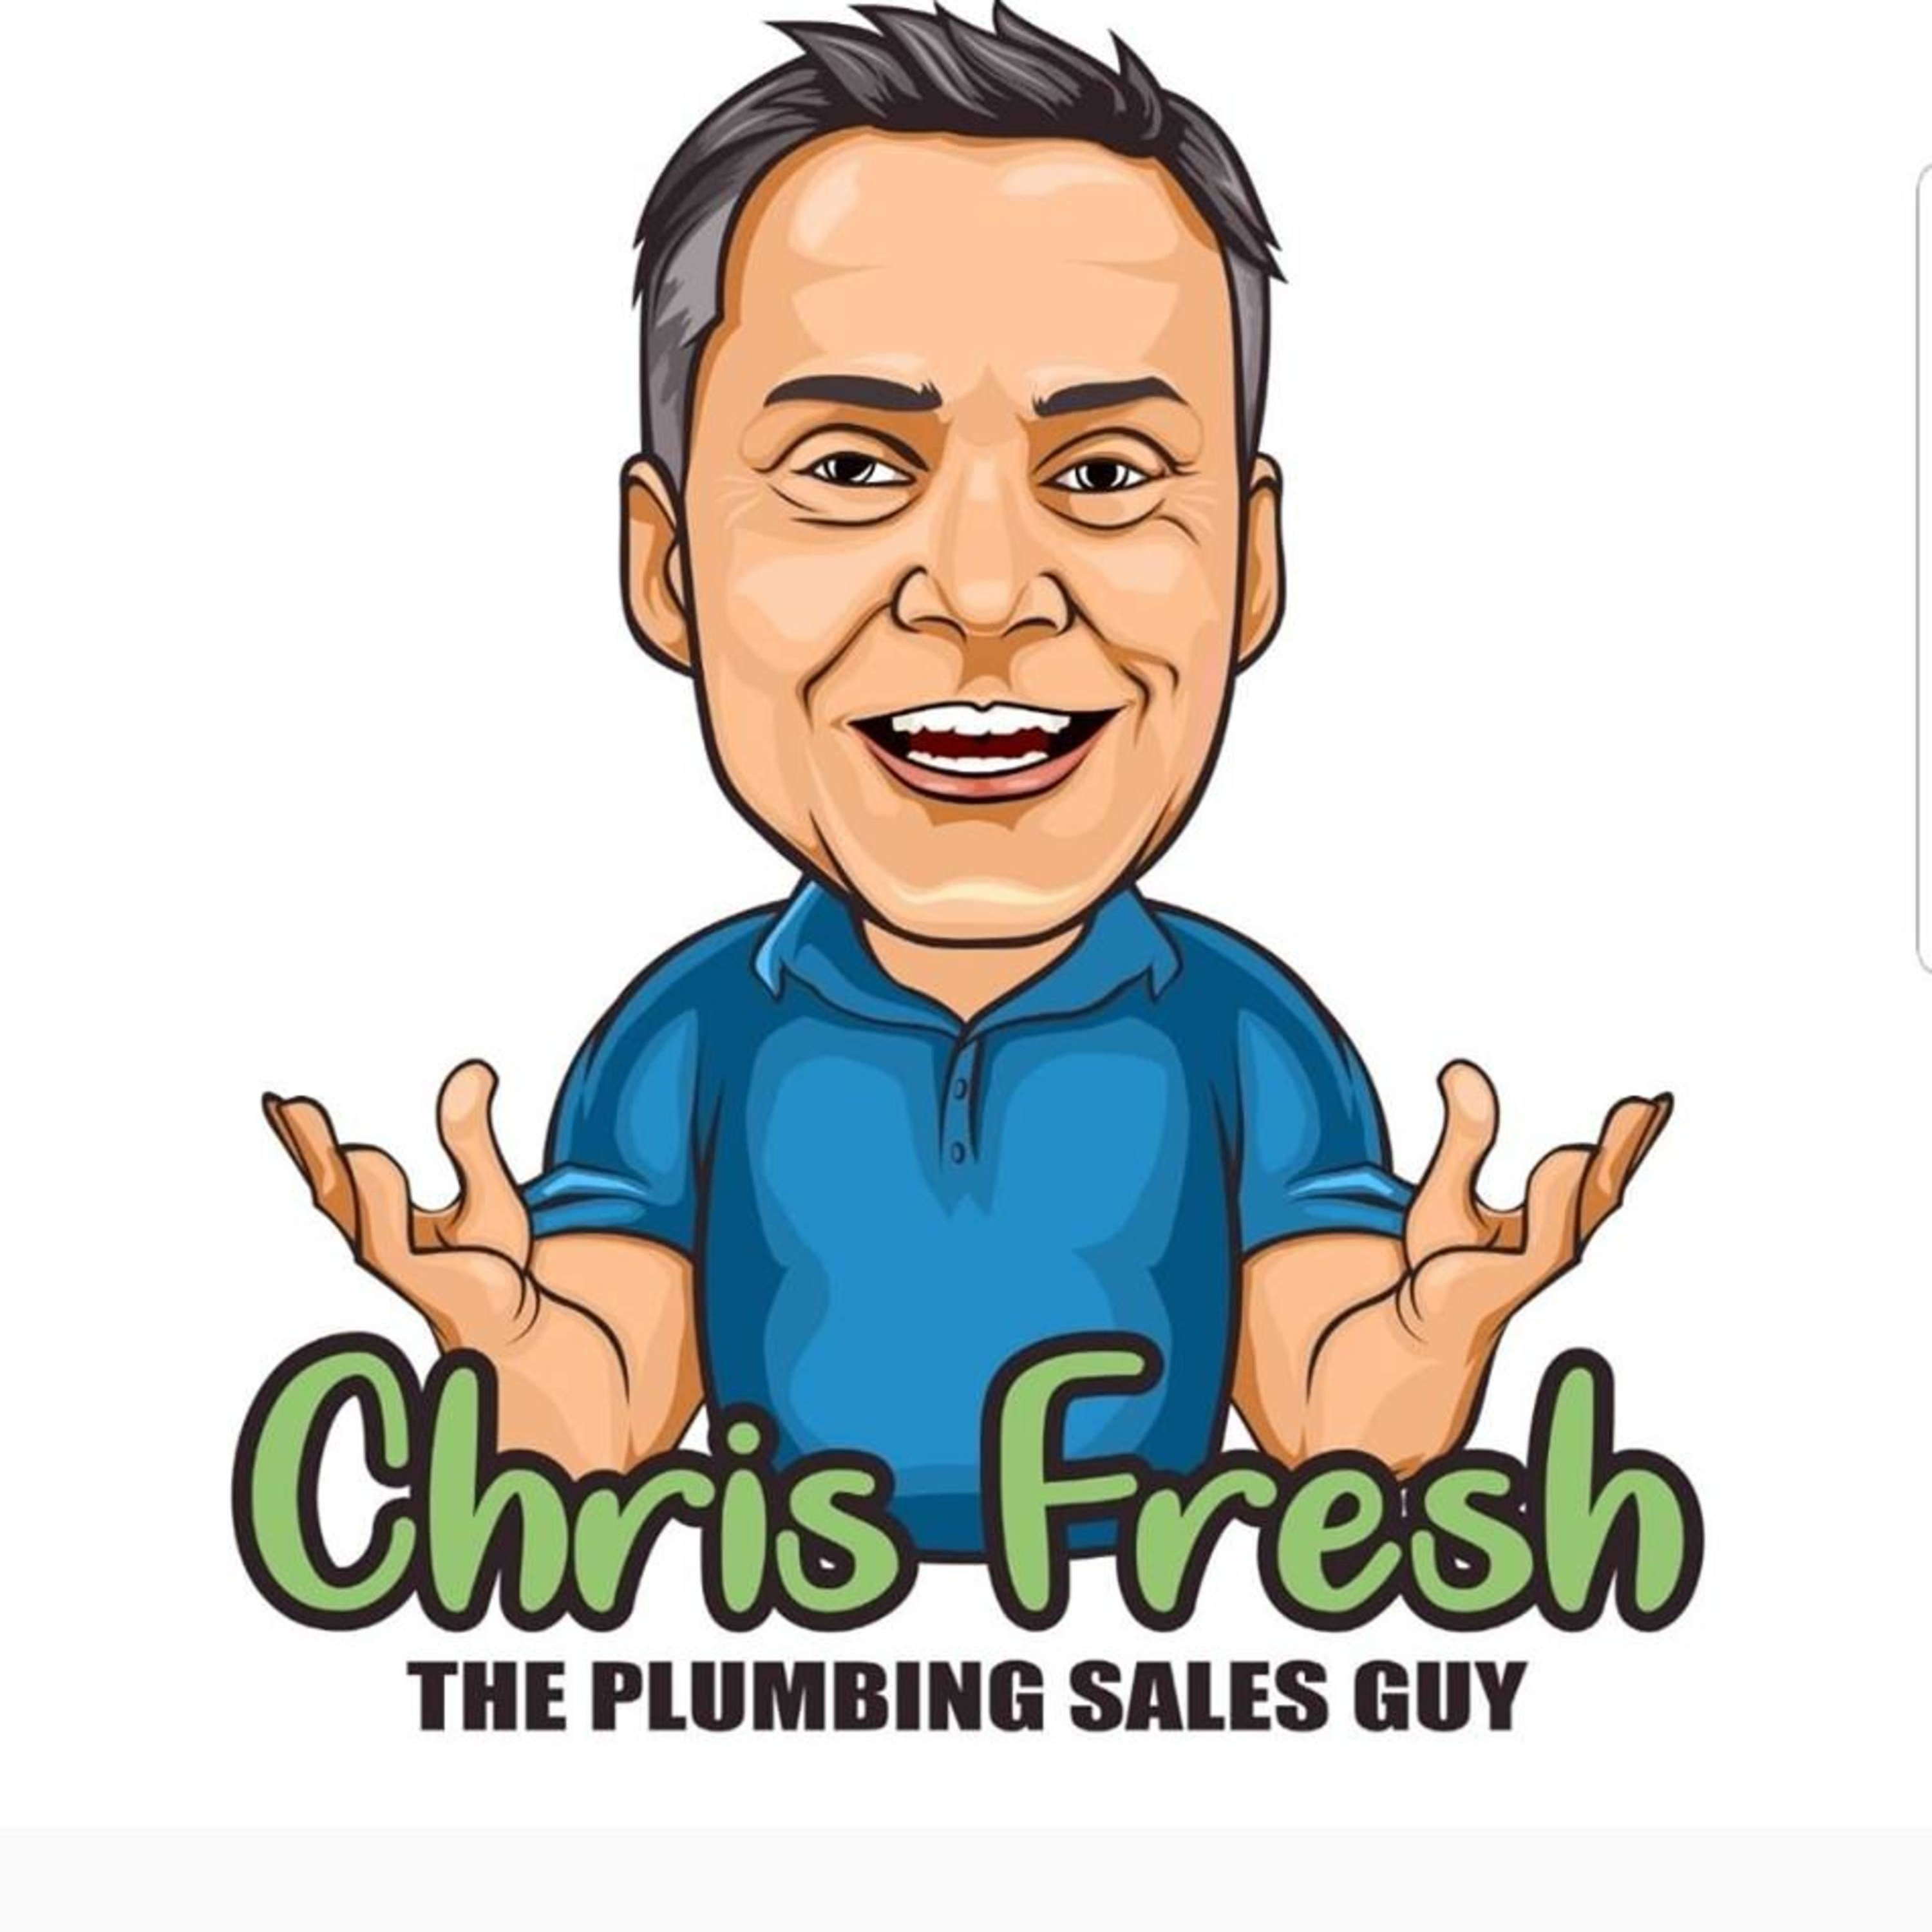 Episode 113: Another Reason Why A Plumber Has Value!